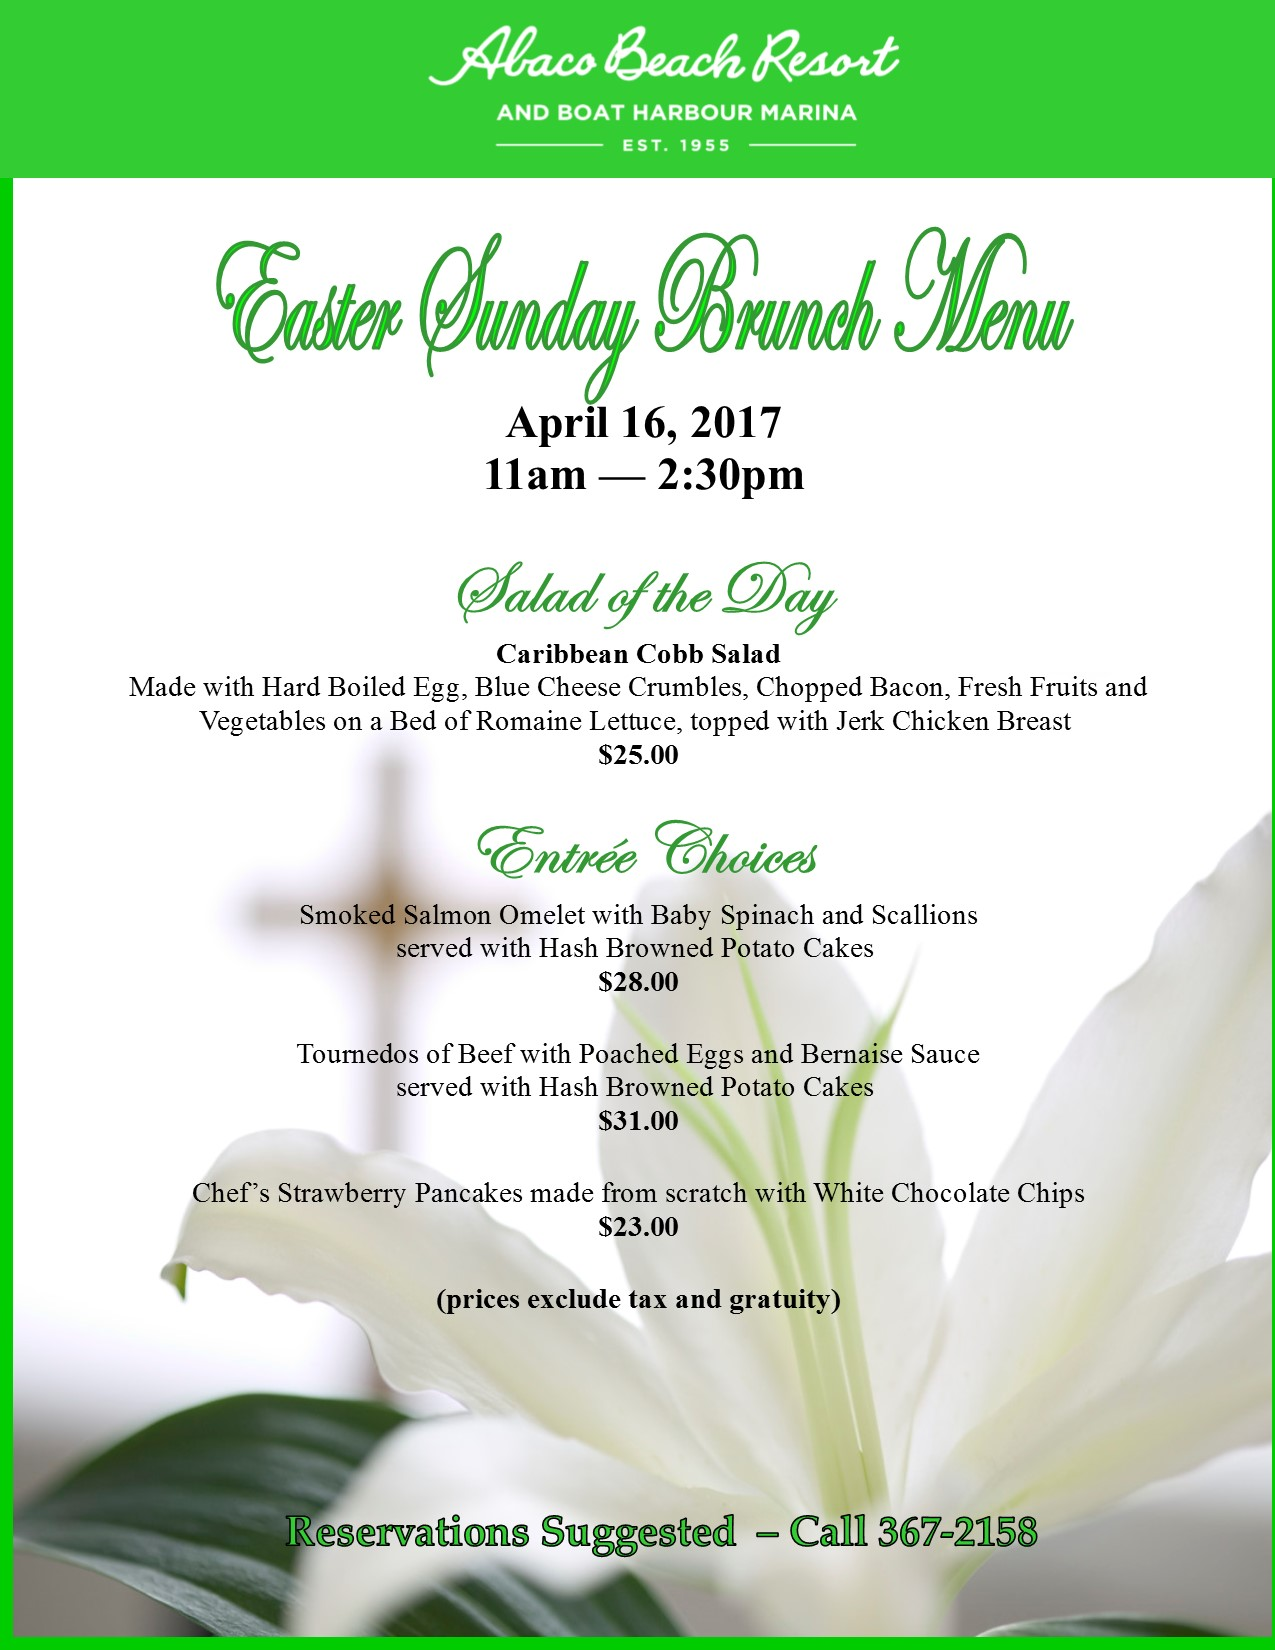 Abaco Easter Sunday Brunch